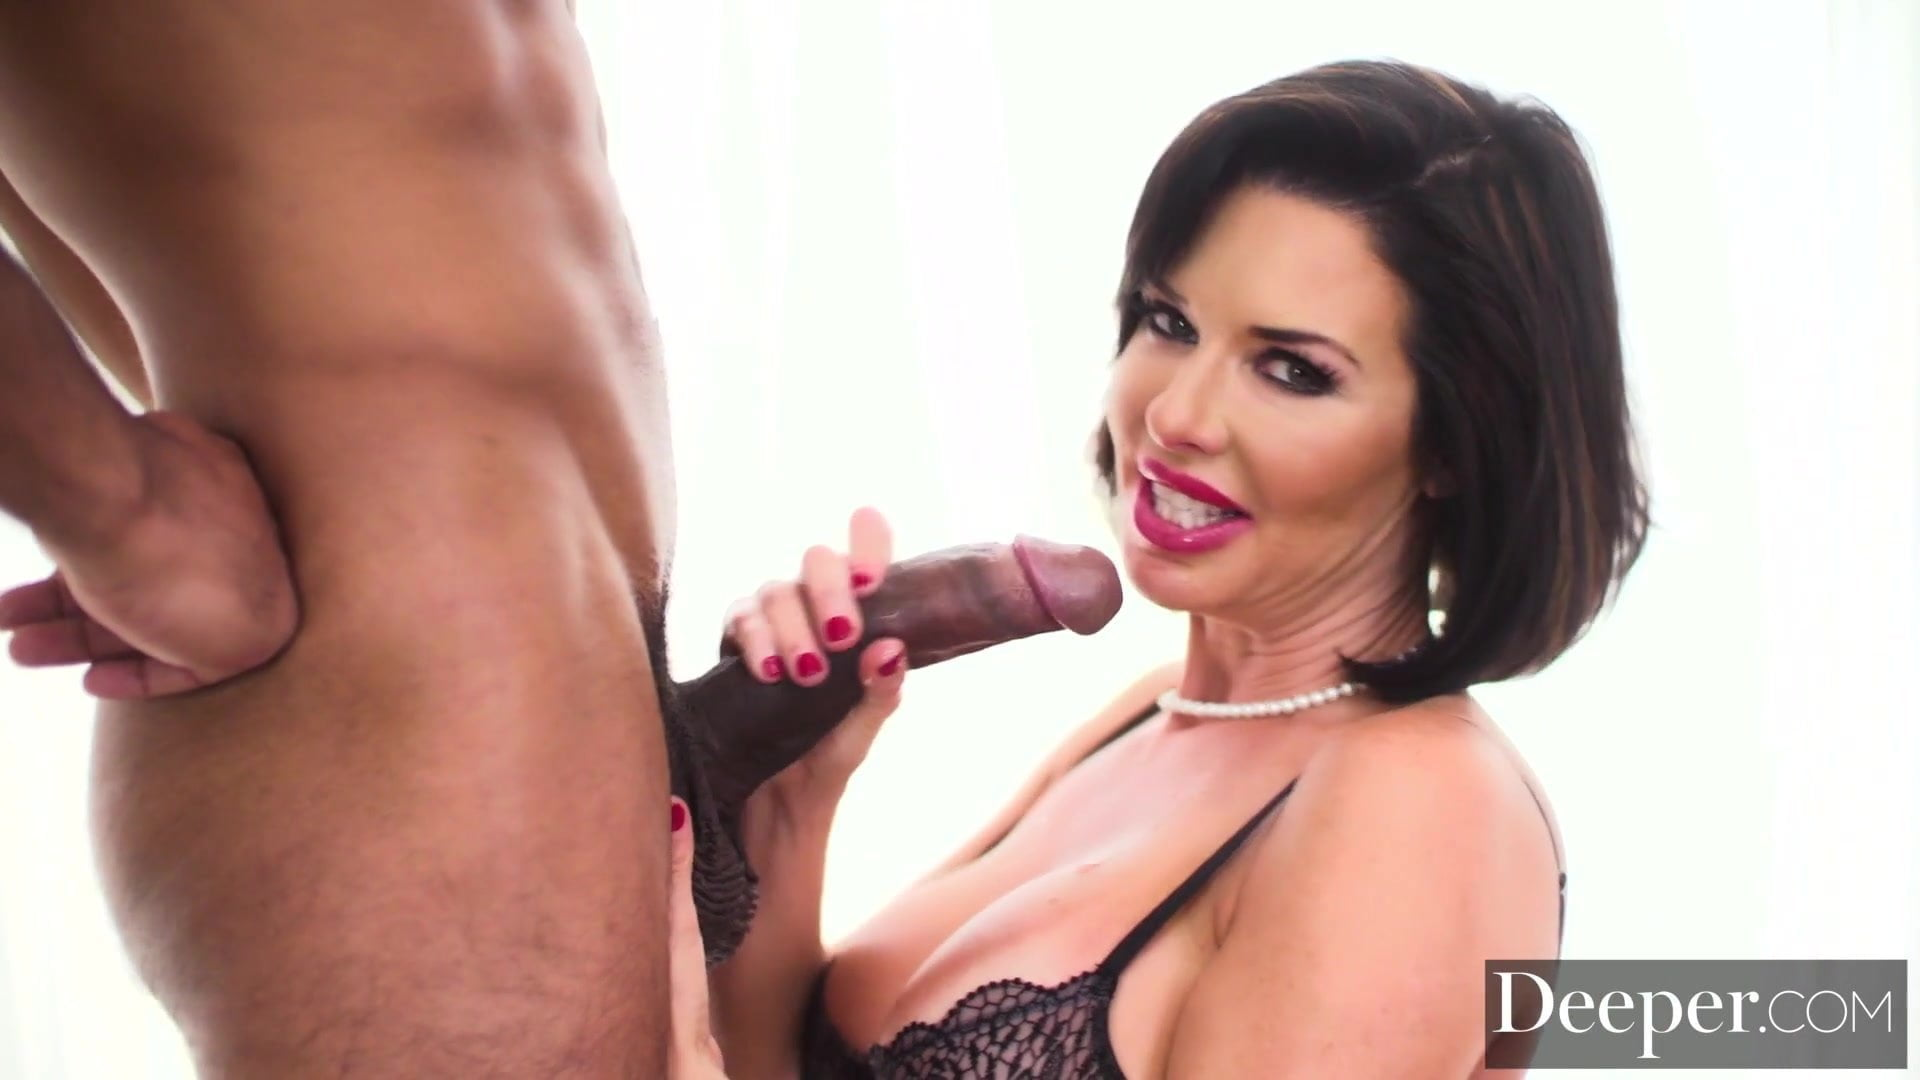 Deeper Veronica Avluv Is A Blowjob Pro